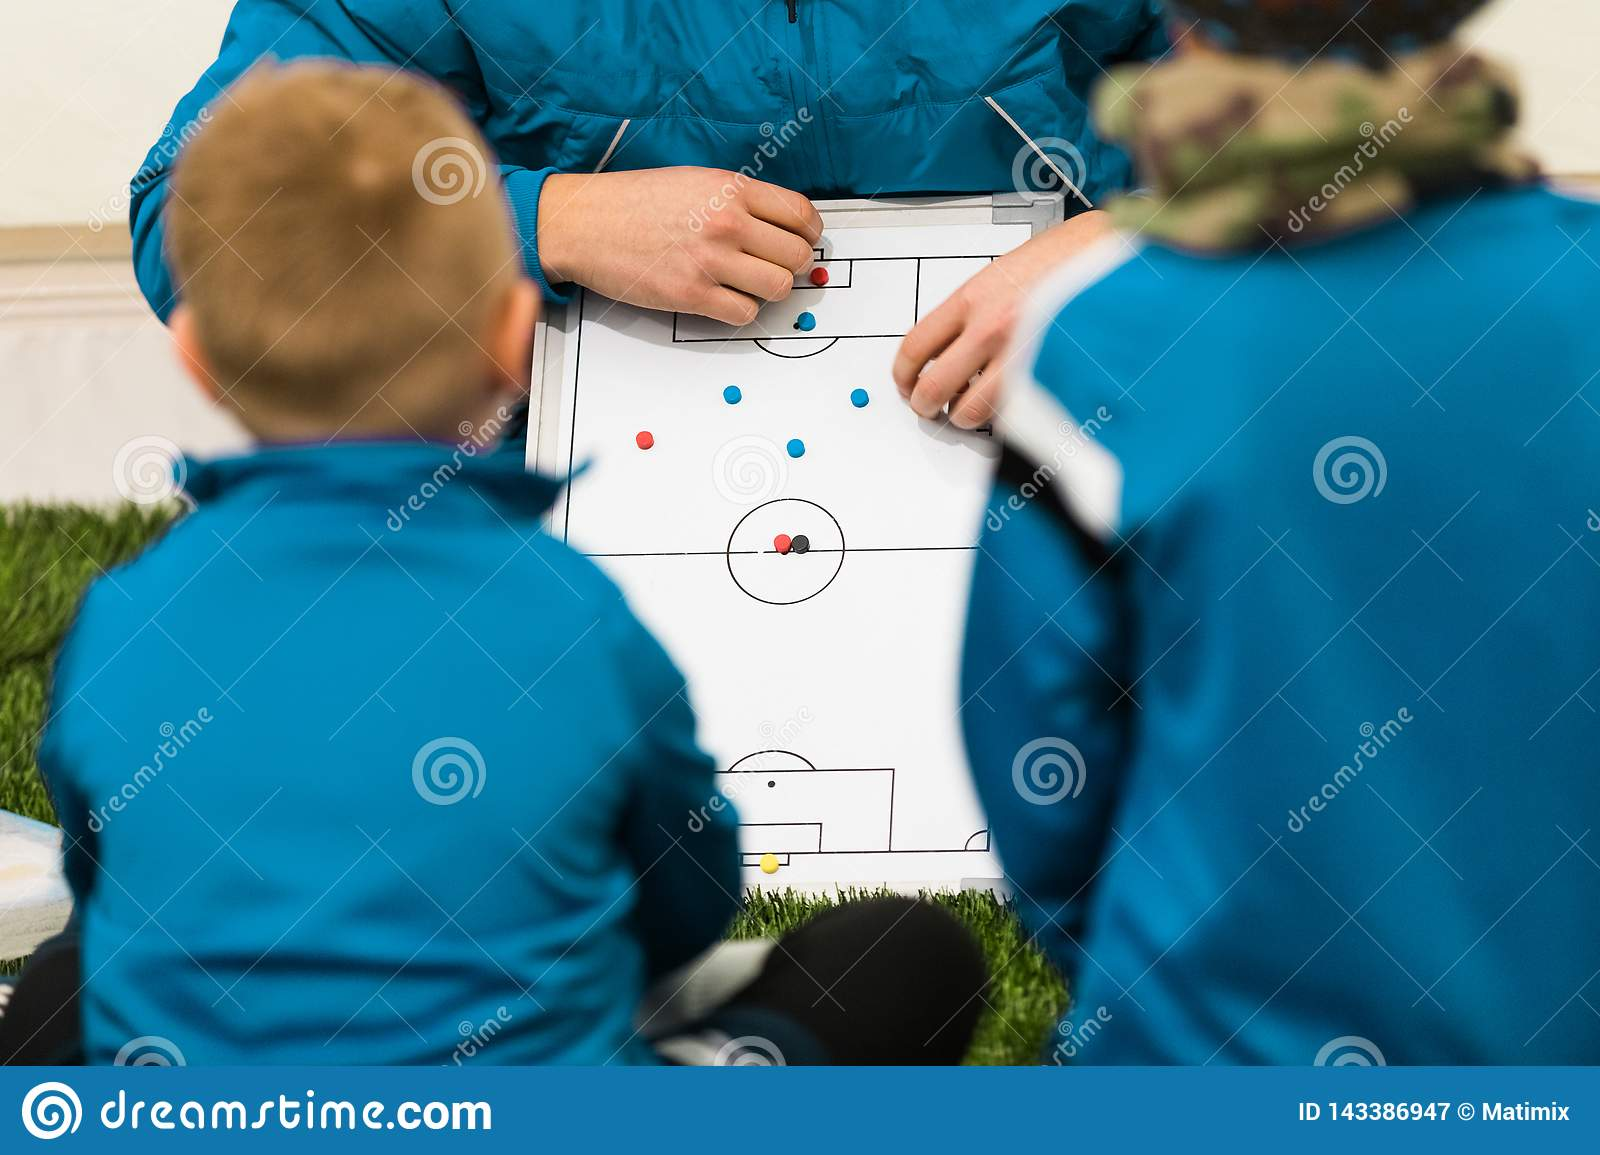 Youth Soccer Coach Coaching Children. Boys Soccer Players Listening Coaches Tactics and Motivational Talk